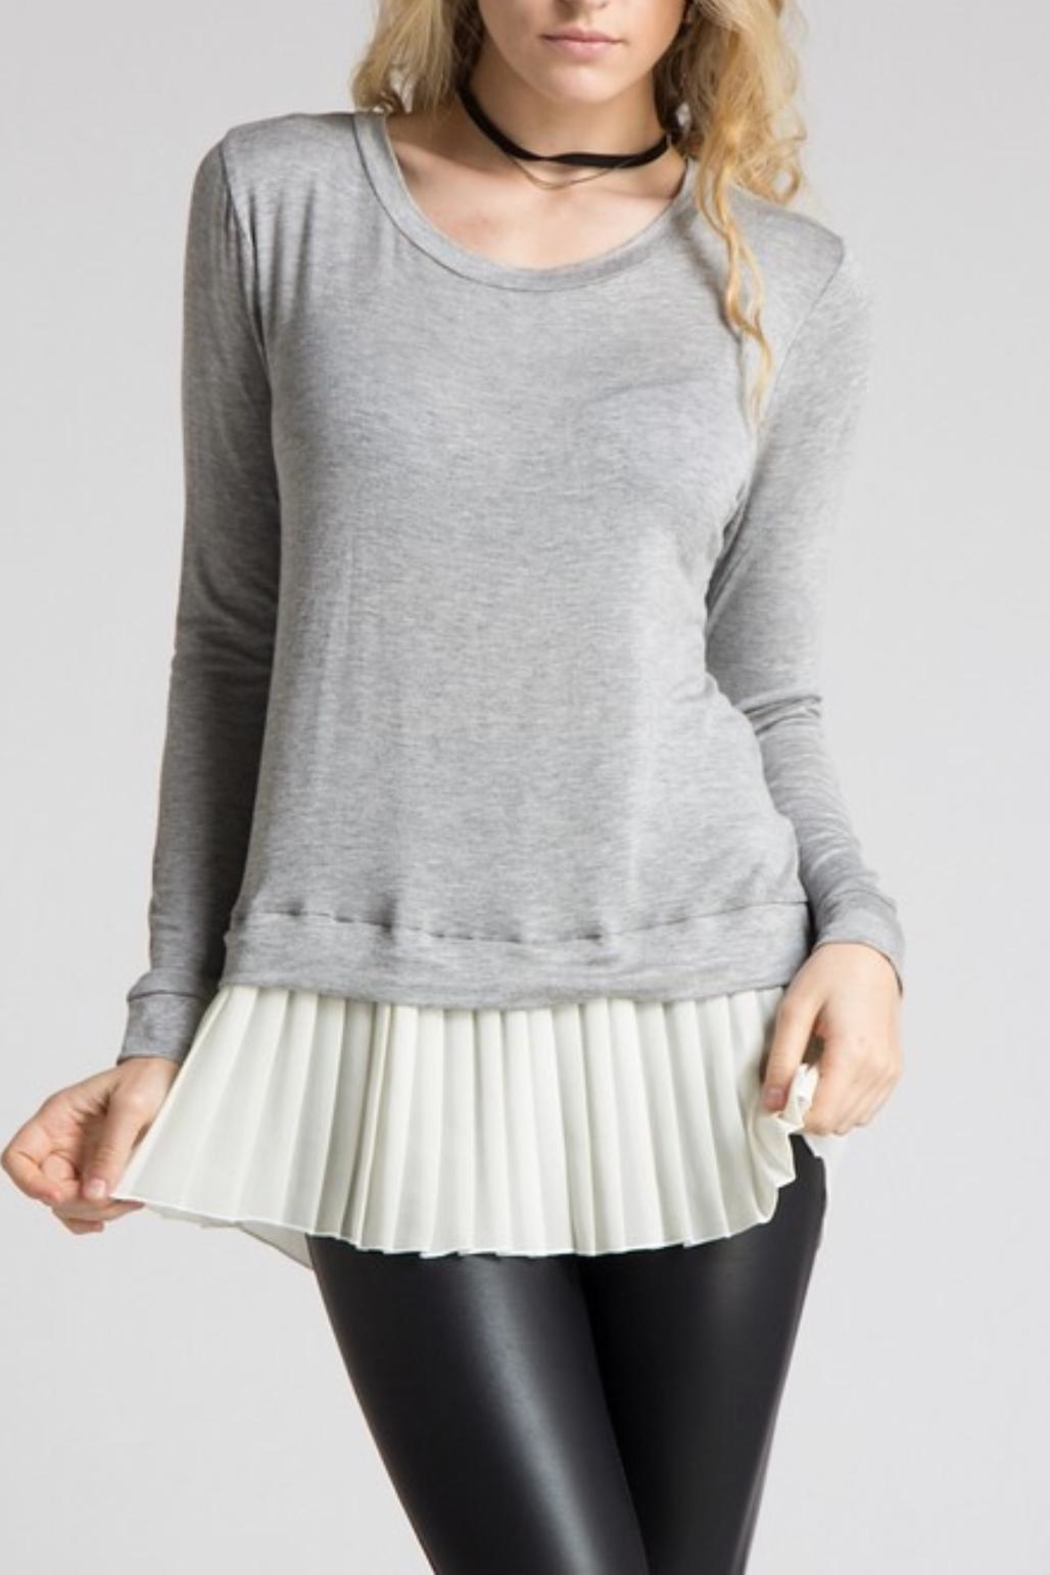 607d9b4c34d2 Fashionomics Pleated Hem Top from New Jersey by Alicia DiMichele ...